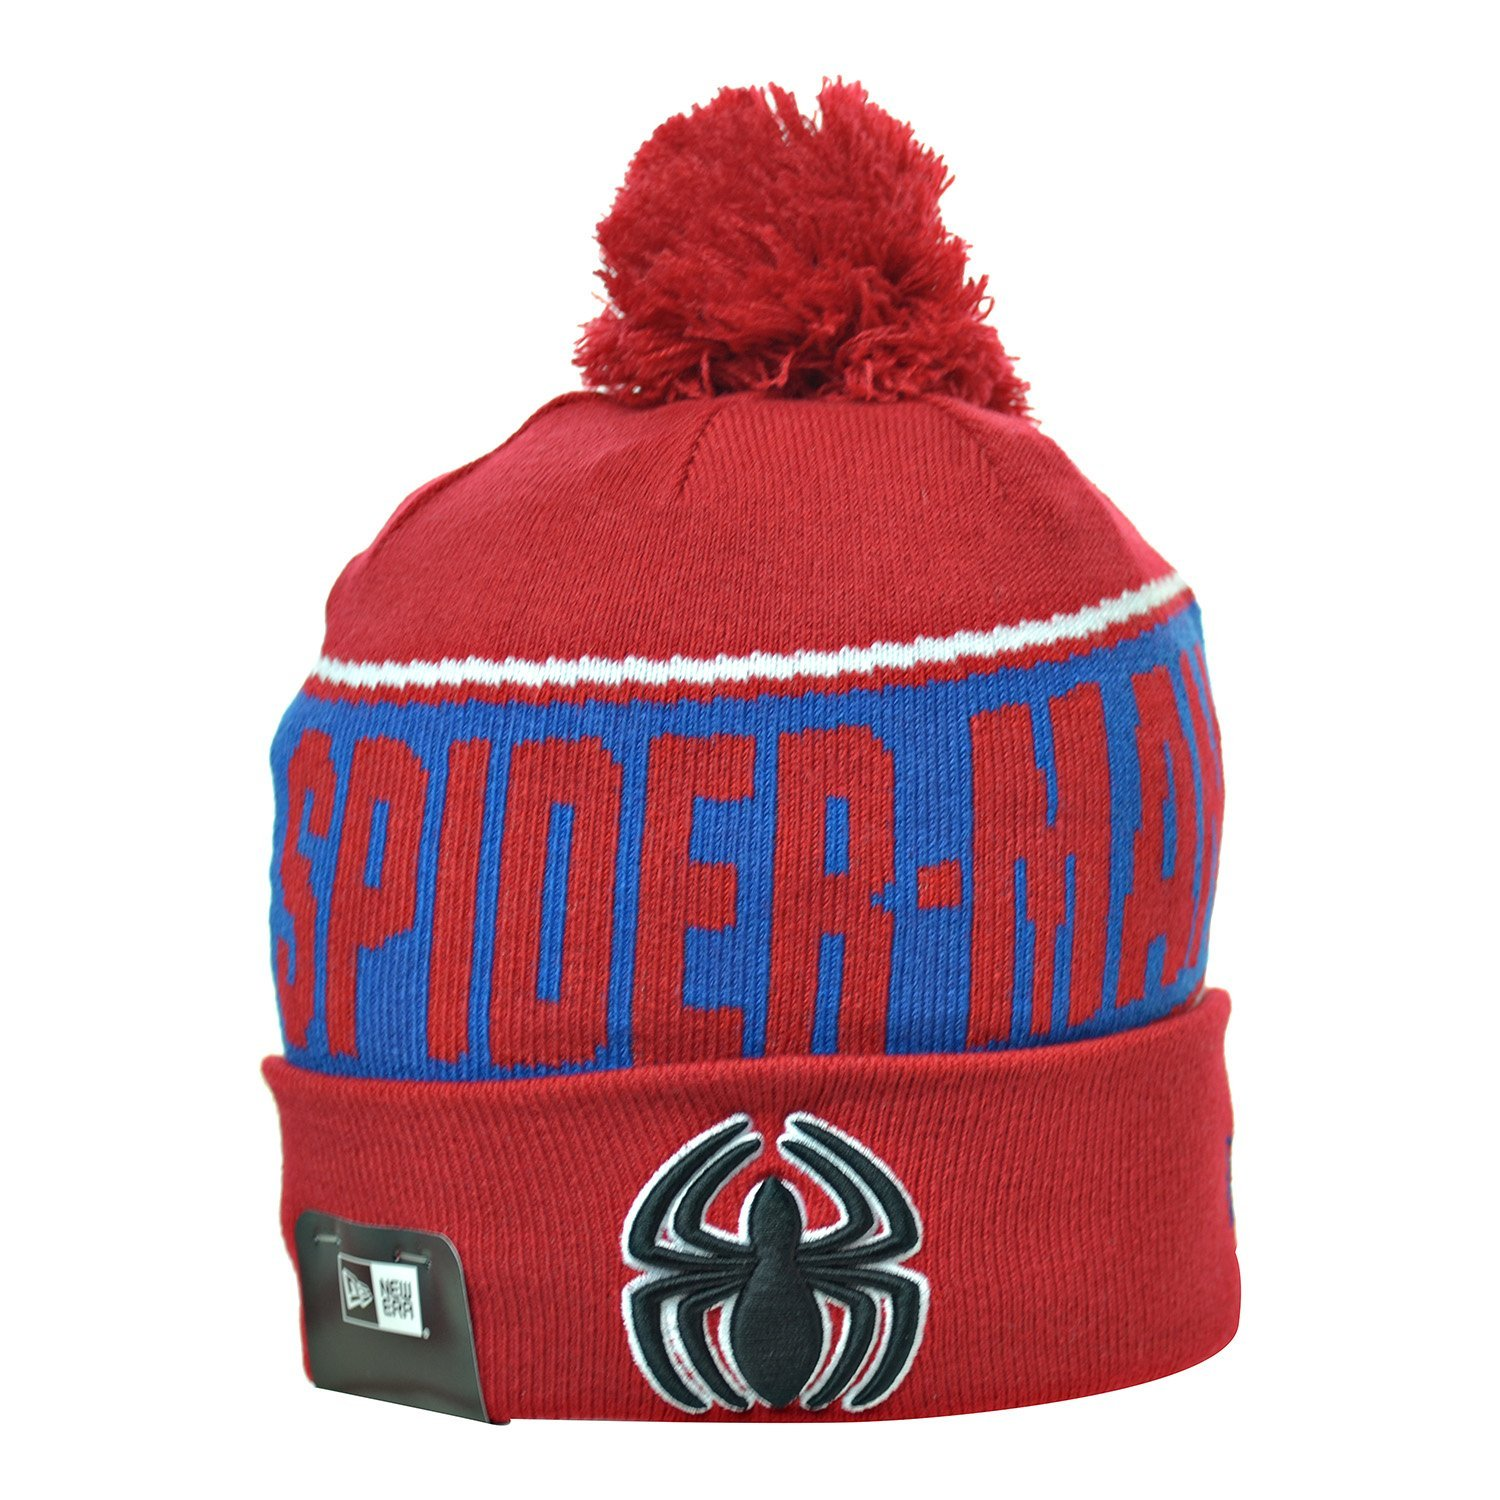 127d5fd89f259f Get Quotations · New Era Spider Man Team Chant Men's Winter Knit Pom Beanie  Red/Blue/Black